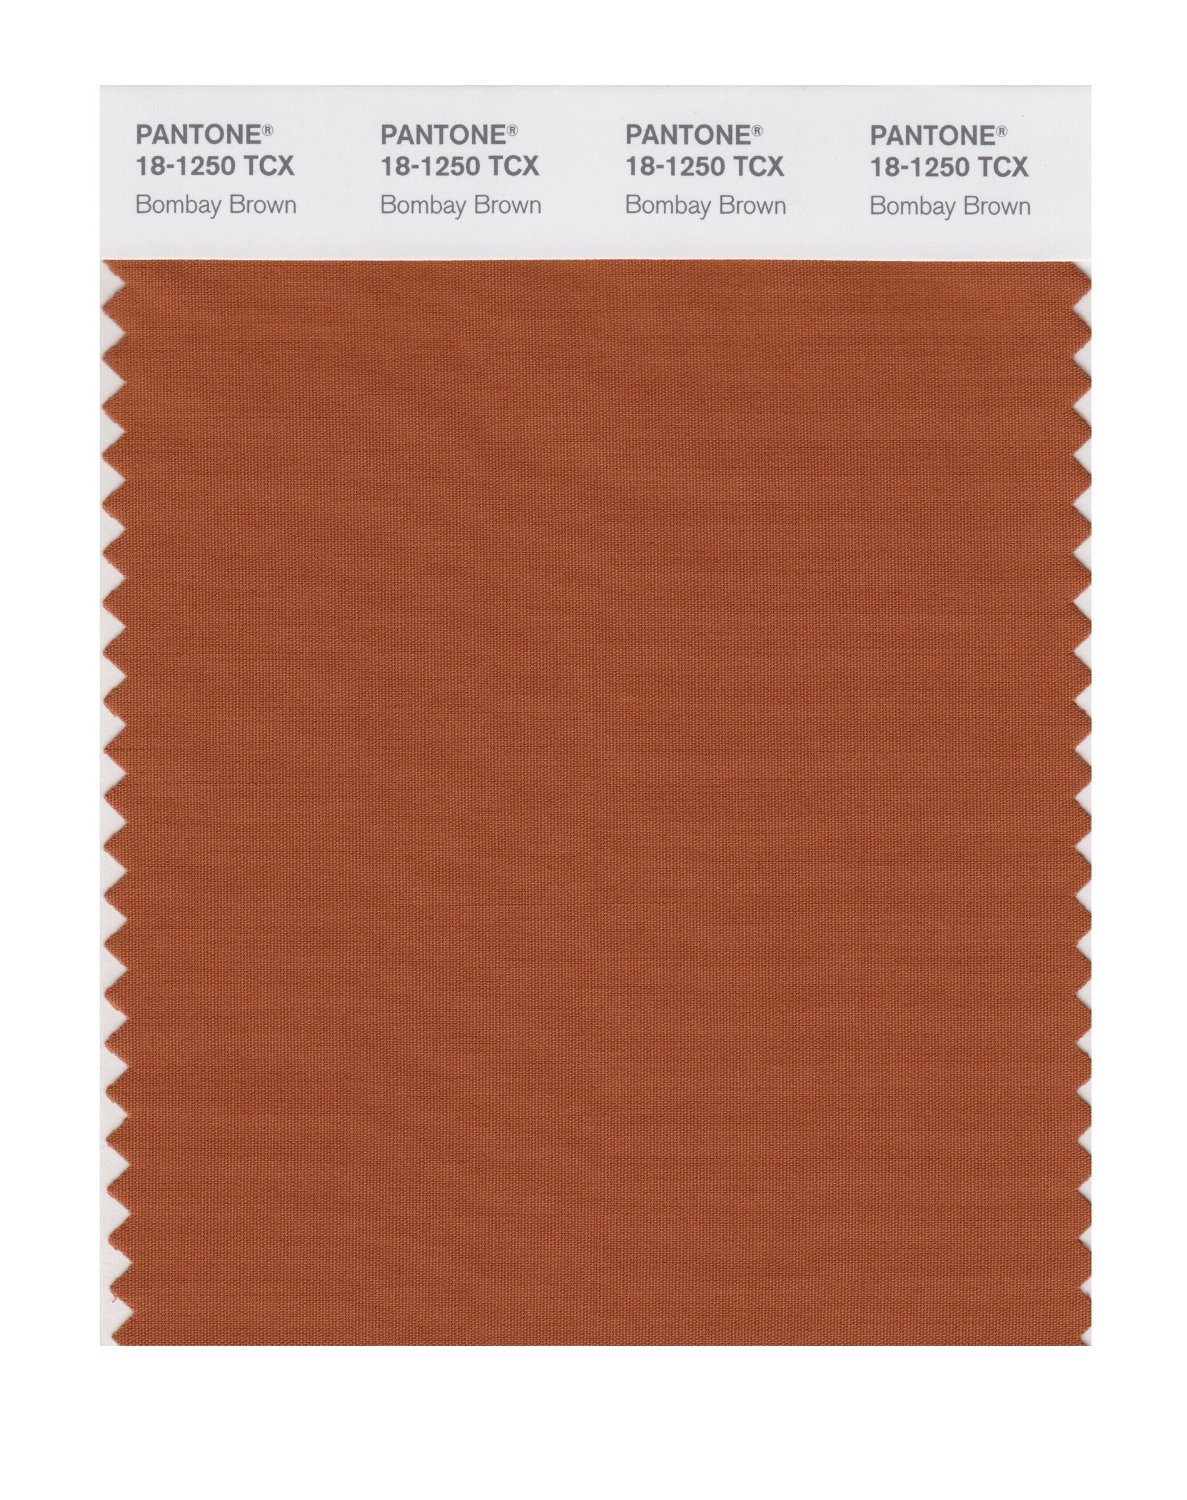 Pantone Smart Swatch 18-1250 Bombay Brown